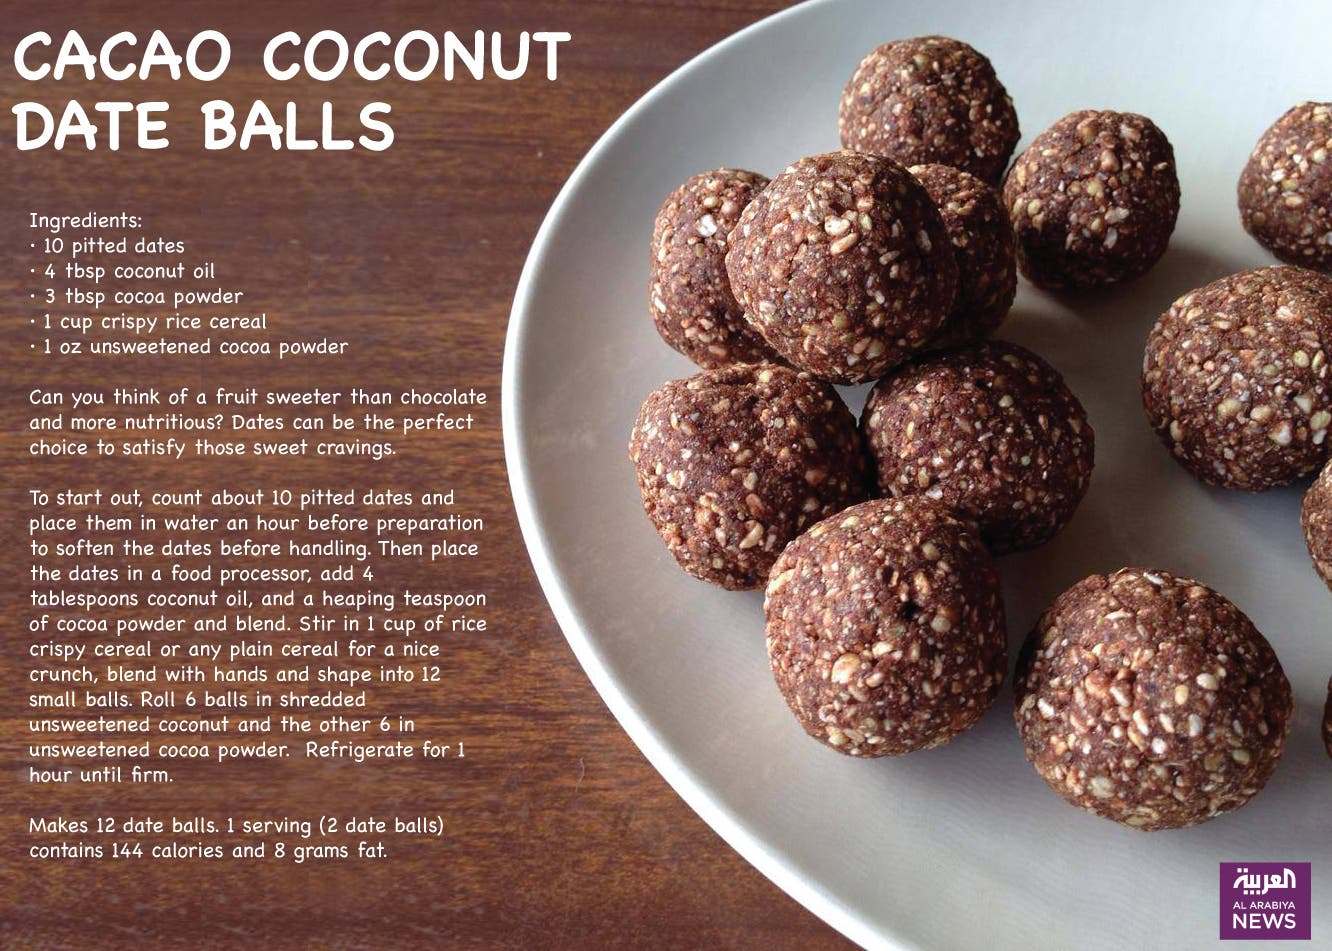 Cacao Coconut Date balls